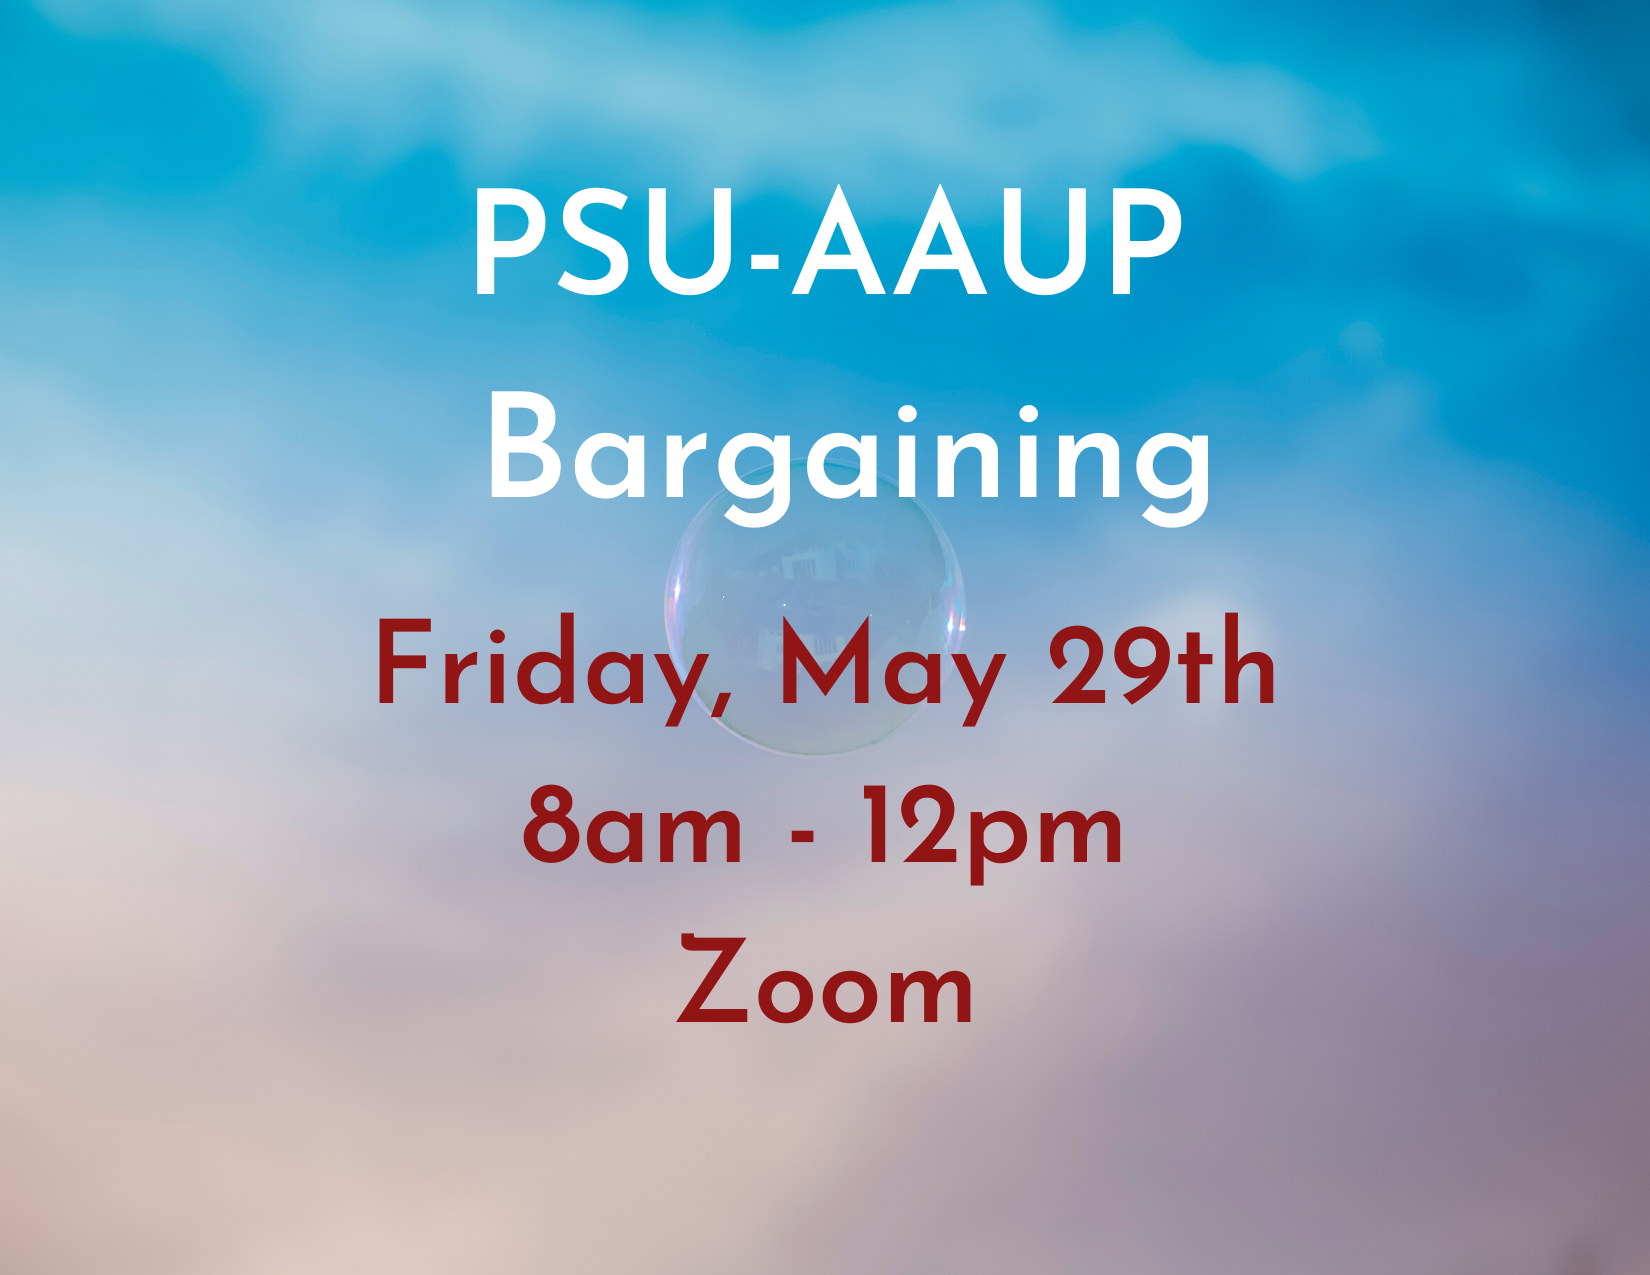 PSU-AAUP Bargaining - May 29